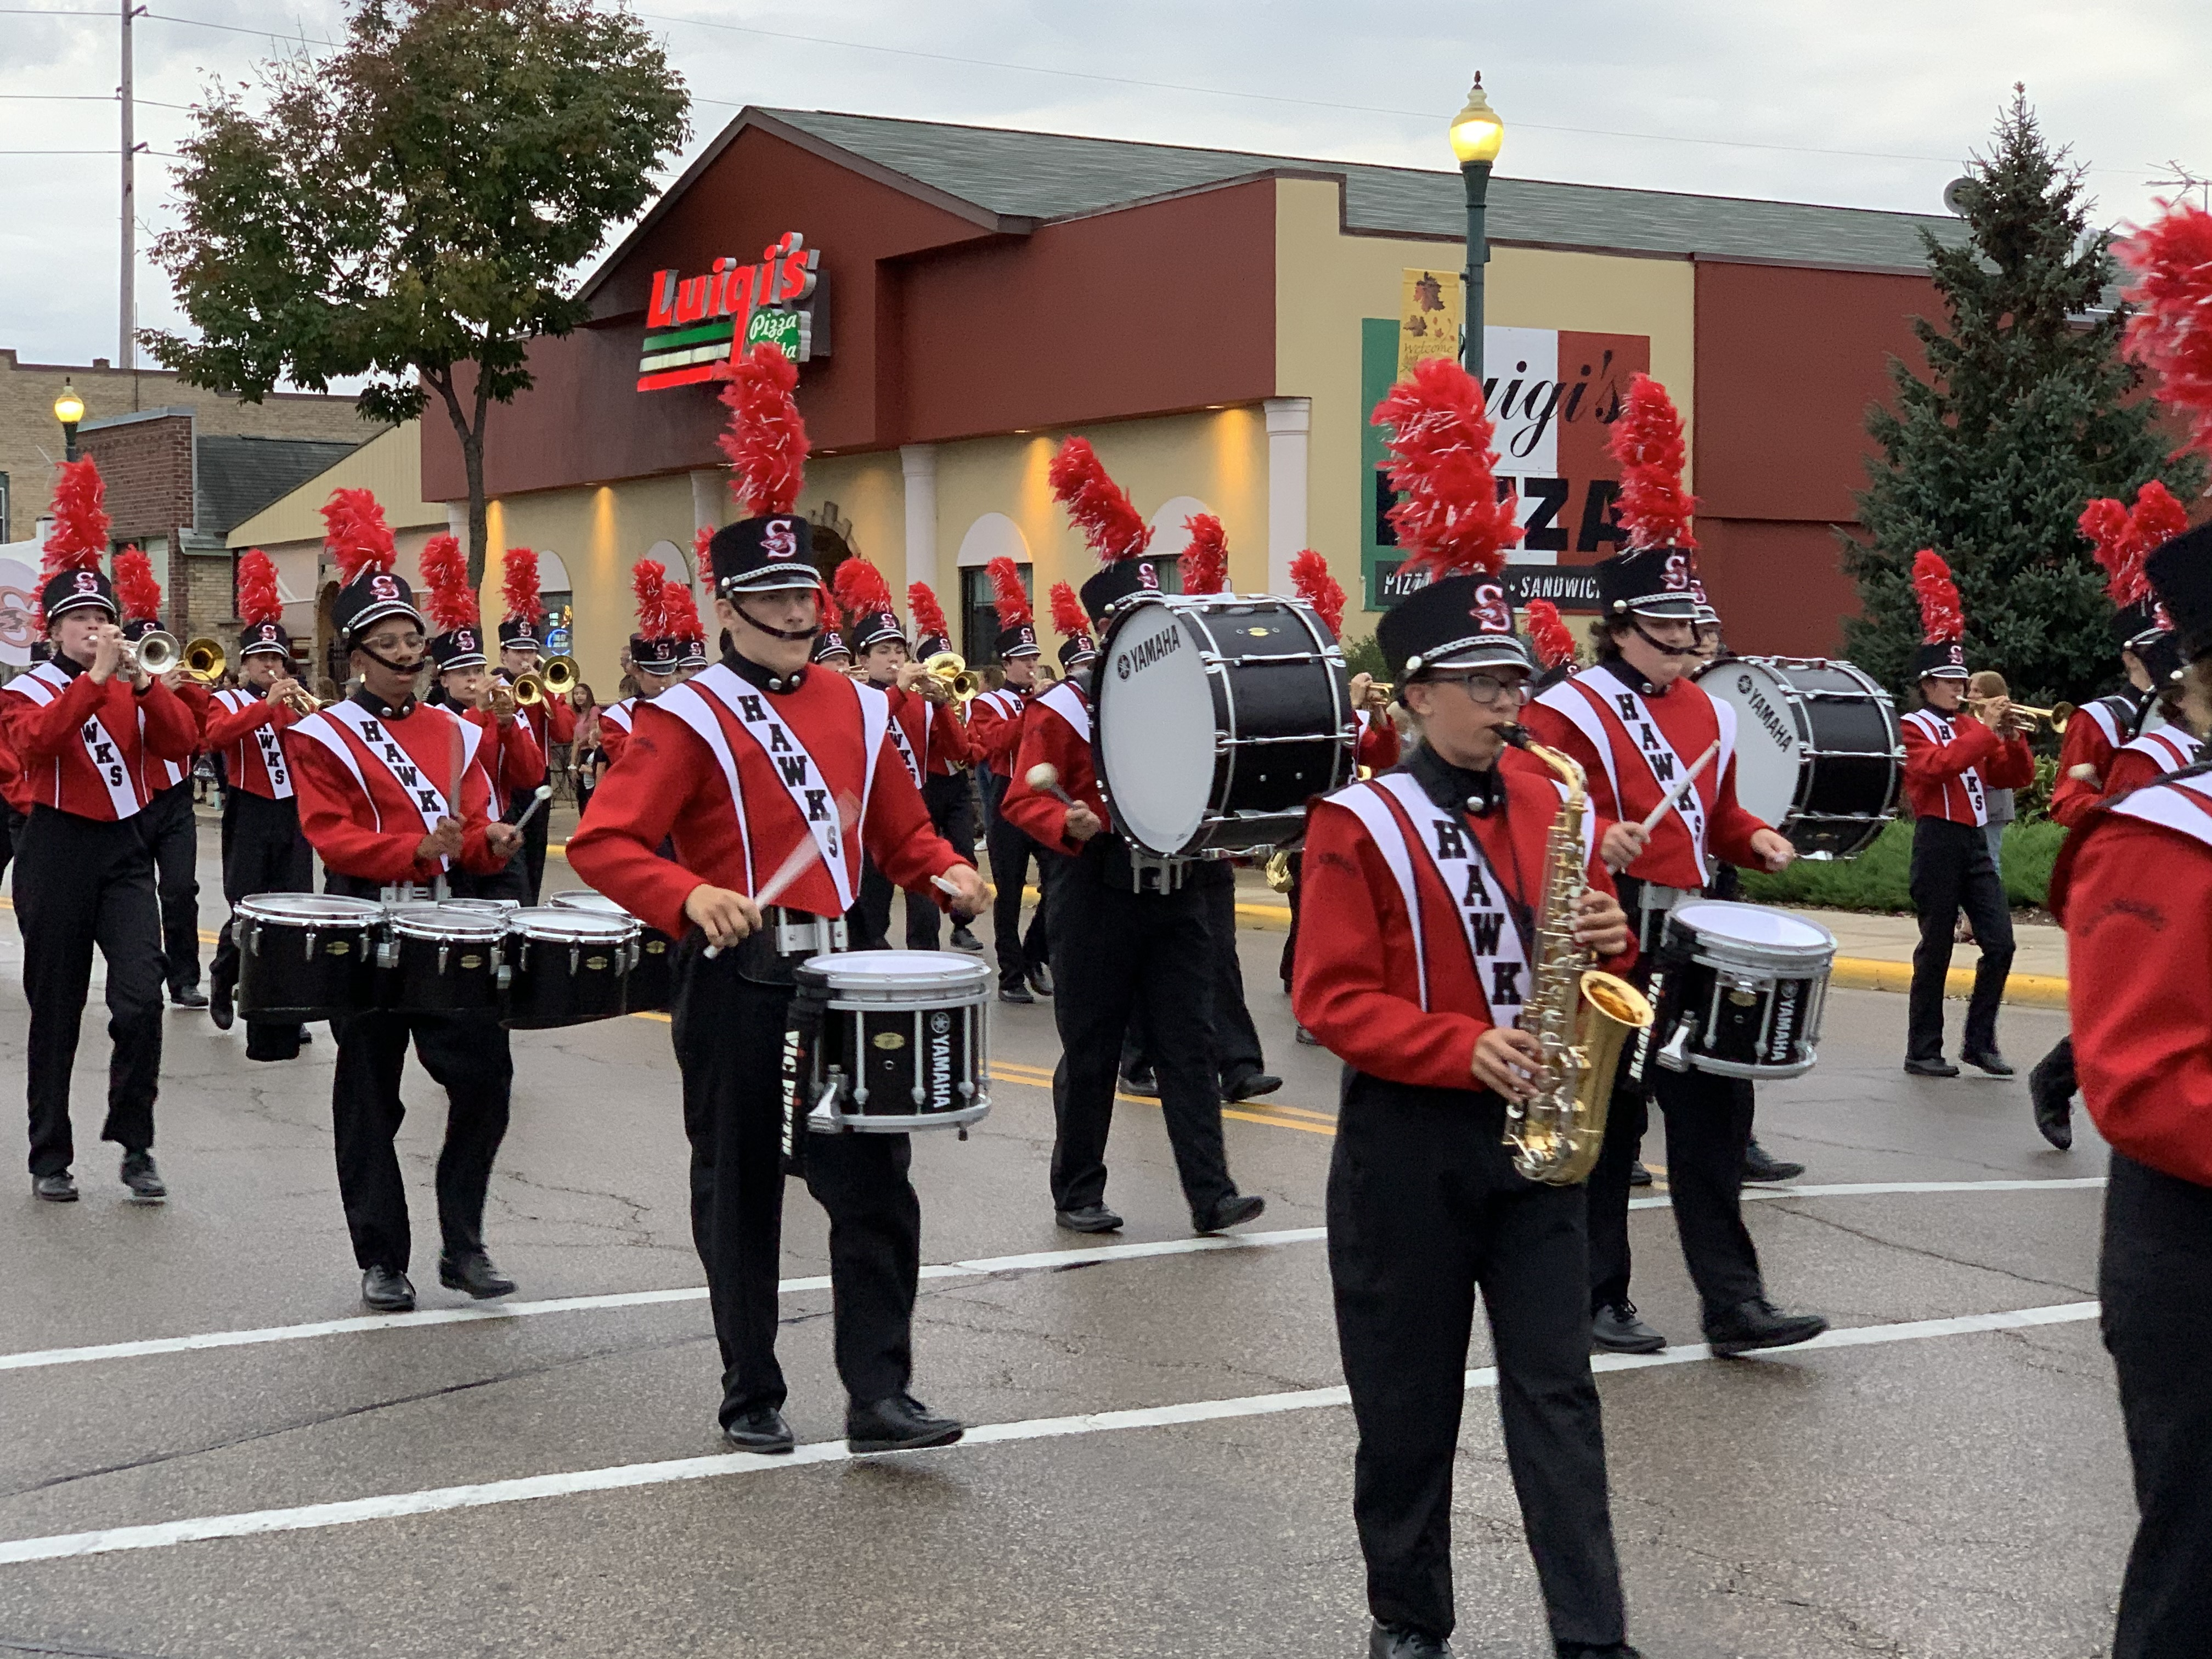 Members of the Shawano Community High School band provide visitors with music as they march down Main Street in Shawano on Sept. 24.Luke Reimer | NEW Media